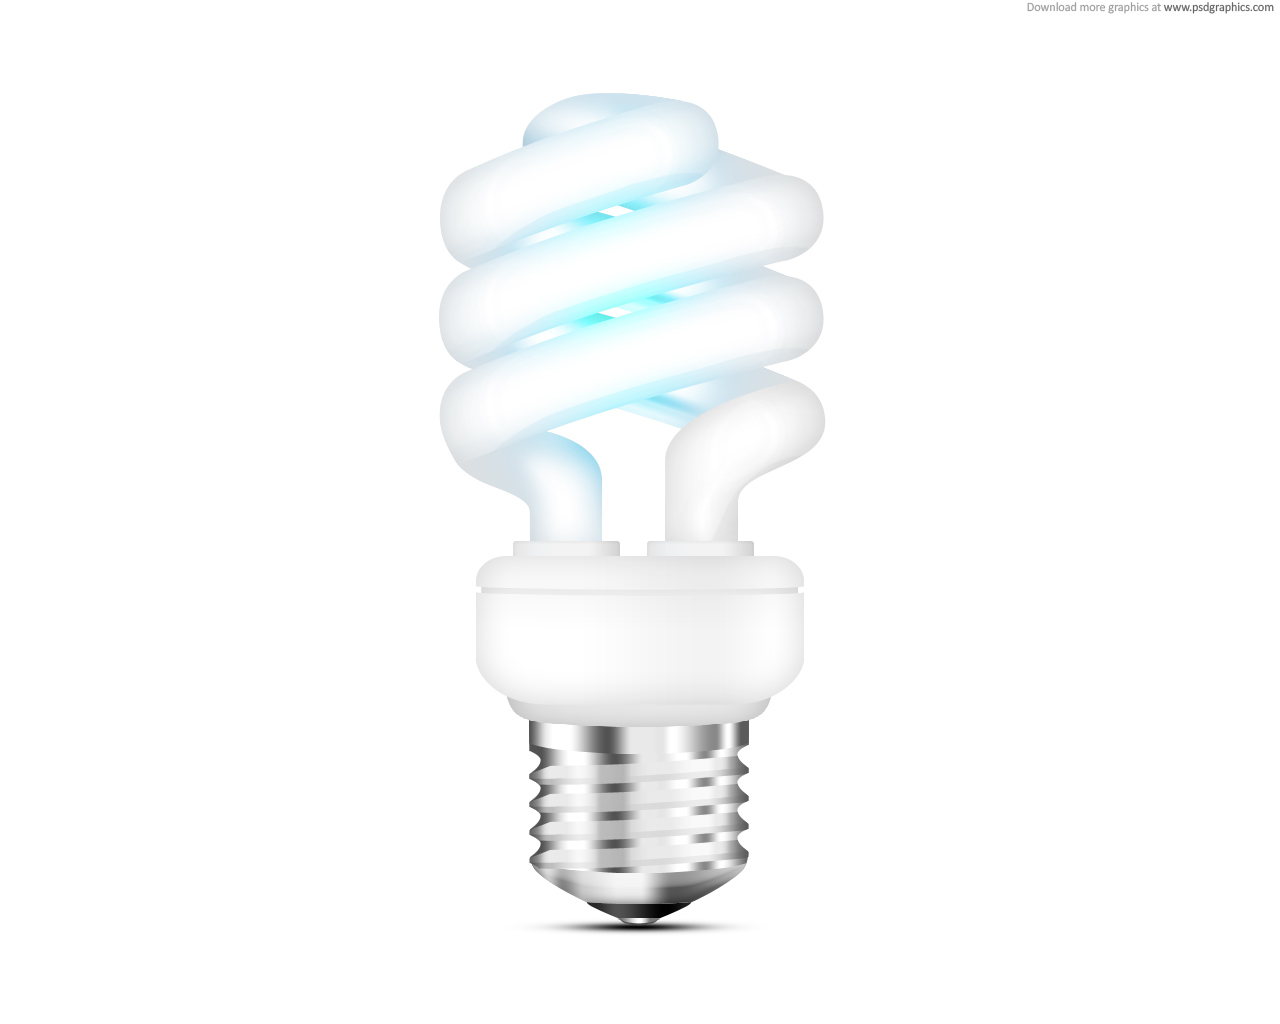 Fluorescent Light Bulb Icon Psd Psdgraphics